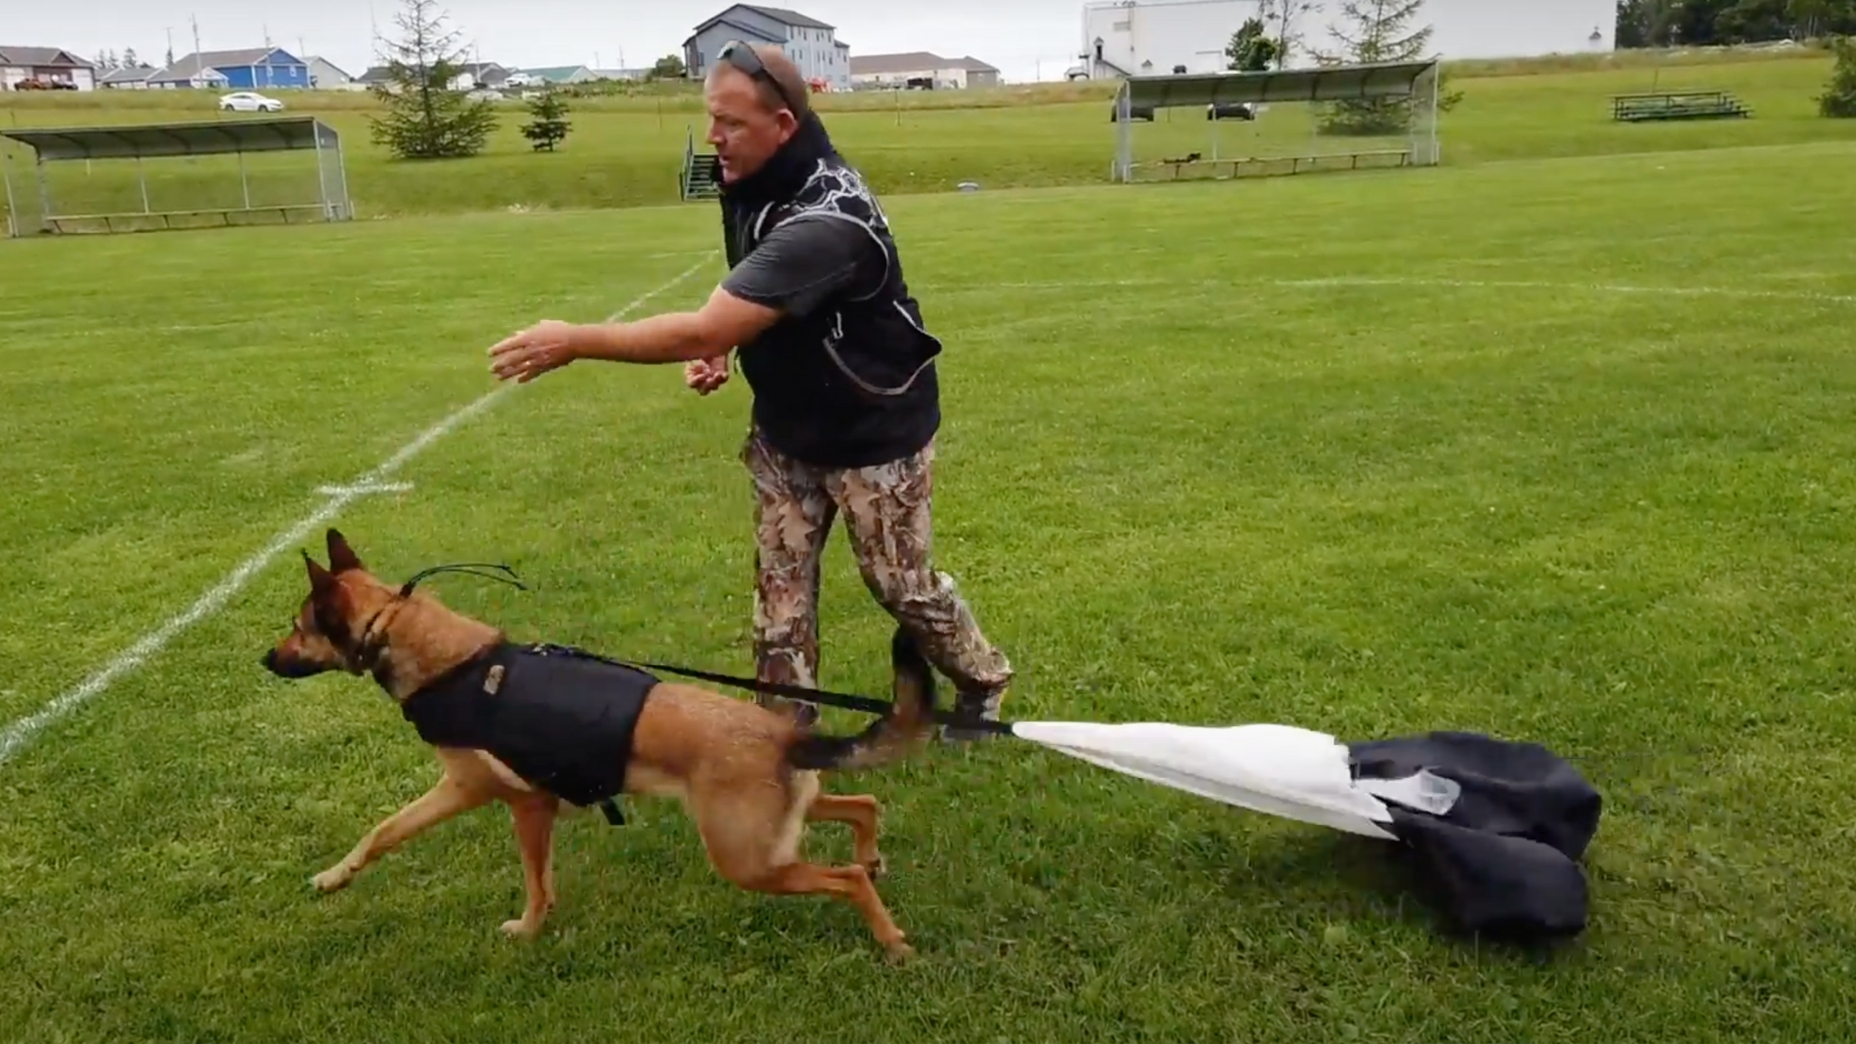 throwing food for dog in XDOG vest